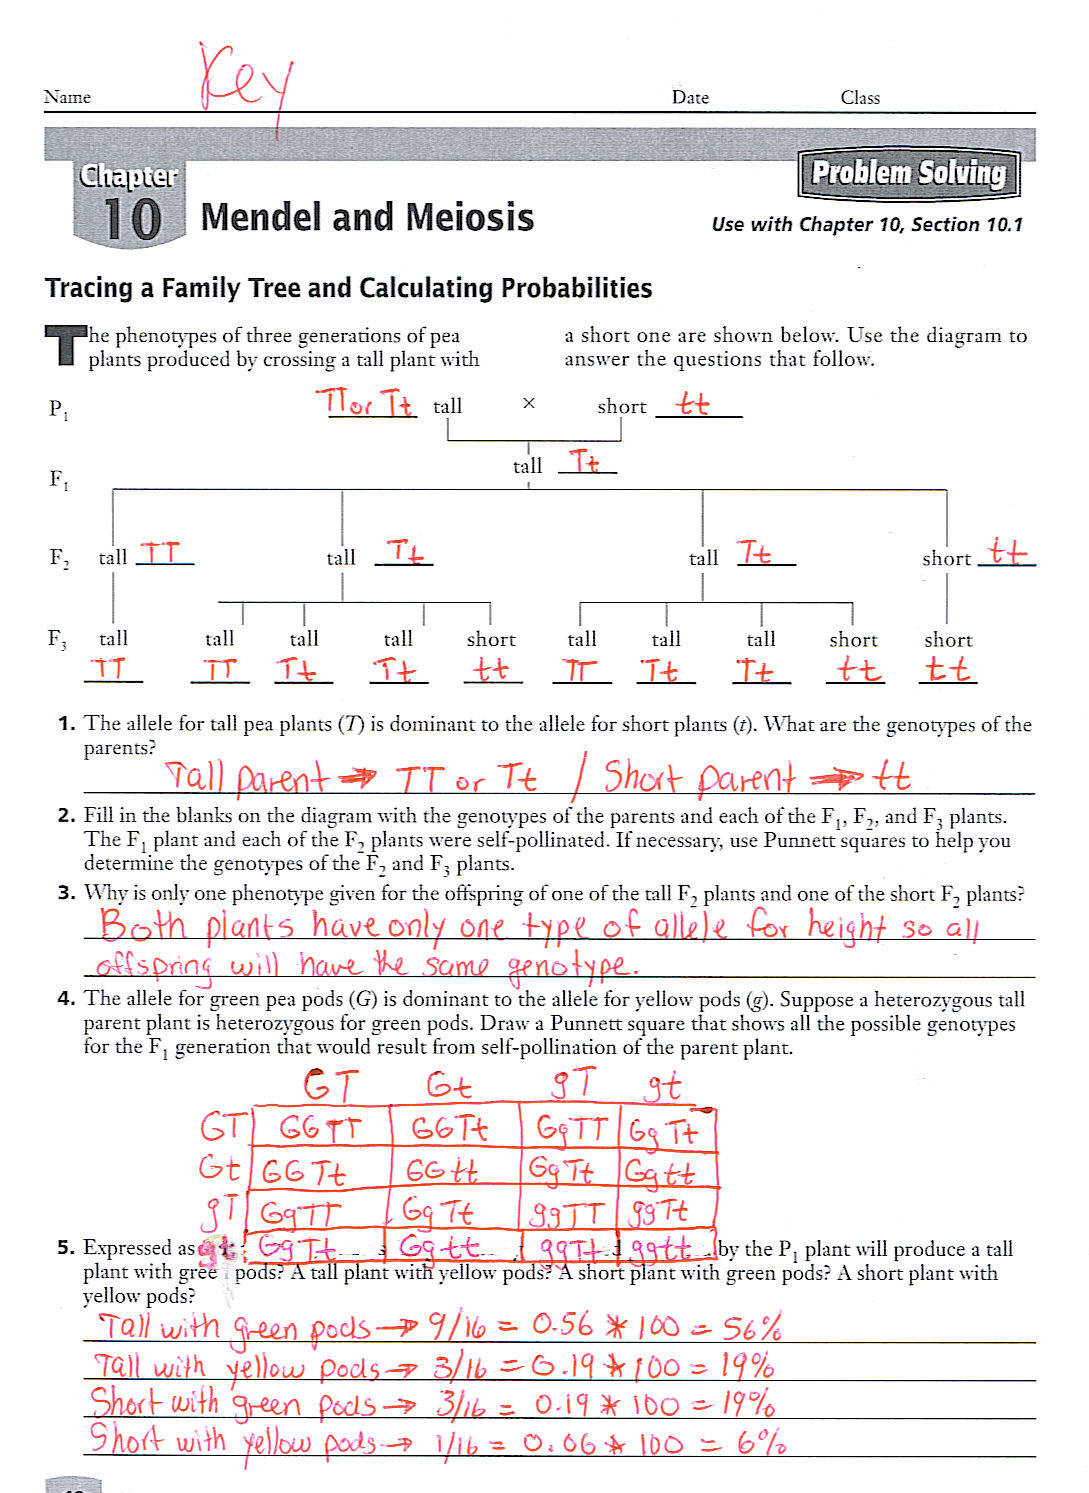 Worksheet Mendel And Meiosis Worksheet Answers Worksheet